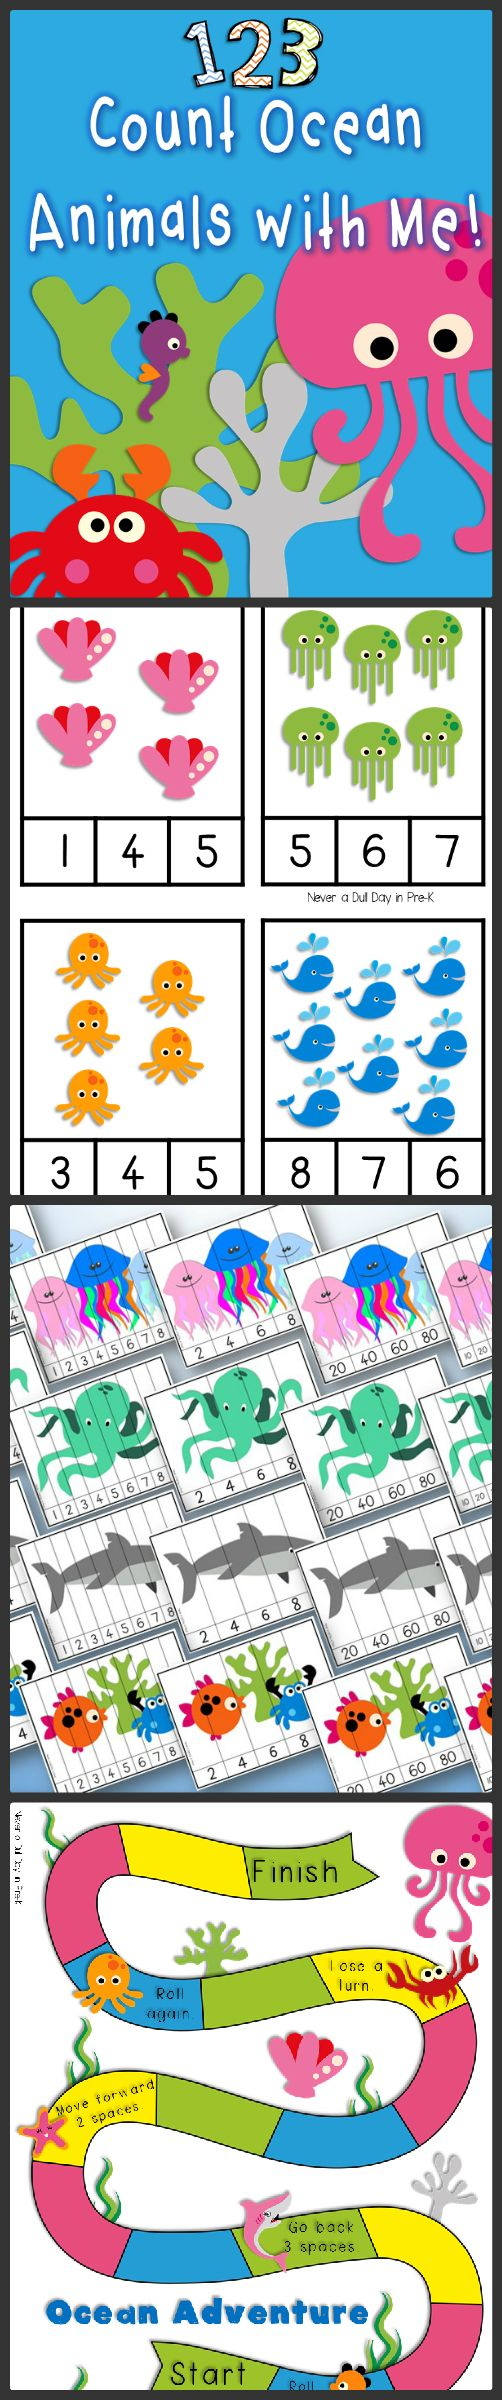 Colorful and engaging activities for practicing number recognition, counting, and 1:1 correspondence with a cute ocean animal theme! Follow me on TpT at https://www.teacherspayteachers.com/Store/Never-A-Dull-Day-In-Pre-k for freebies and other fun stuff!